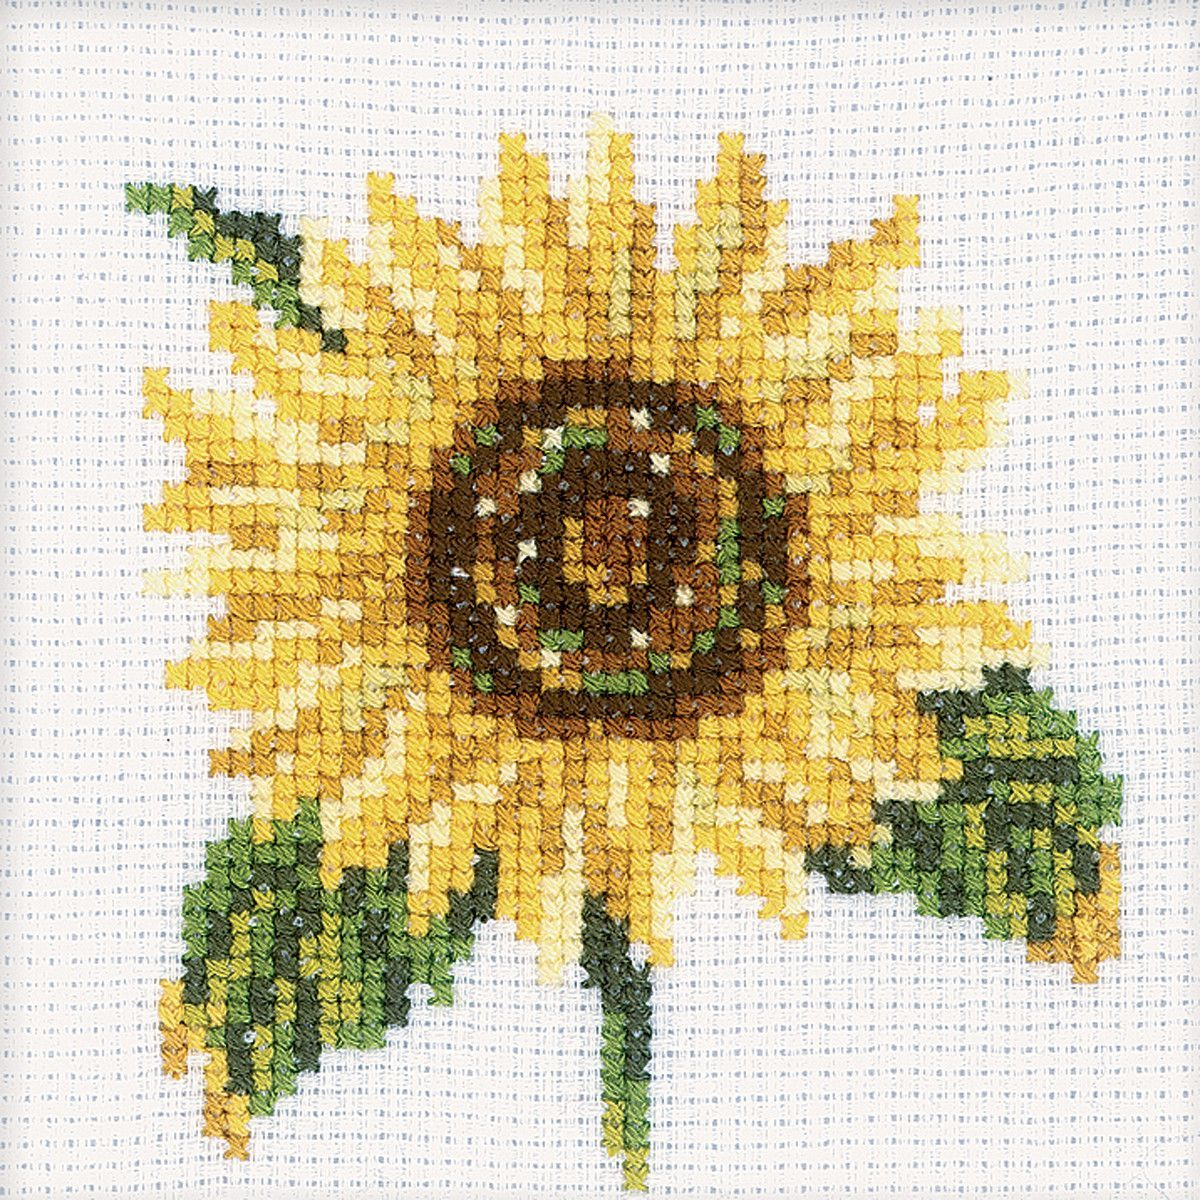 RTO-Cross Stitch Kit. This little kit will allow you to create a beautiful flower design that will make a great decoration for any room of the house once you have completed it. This package contains c